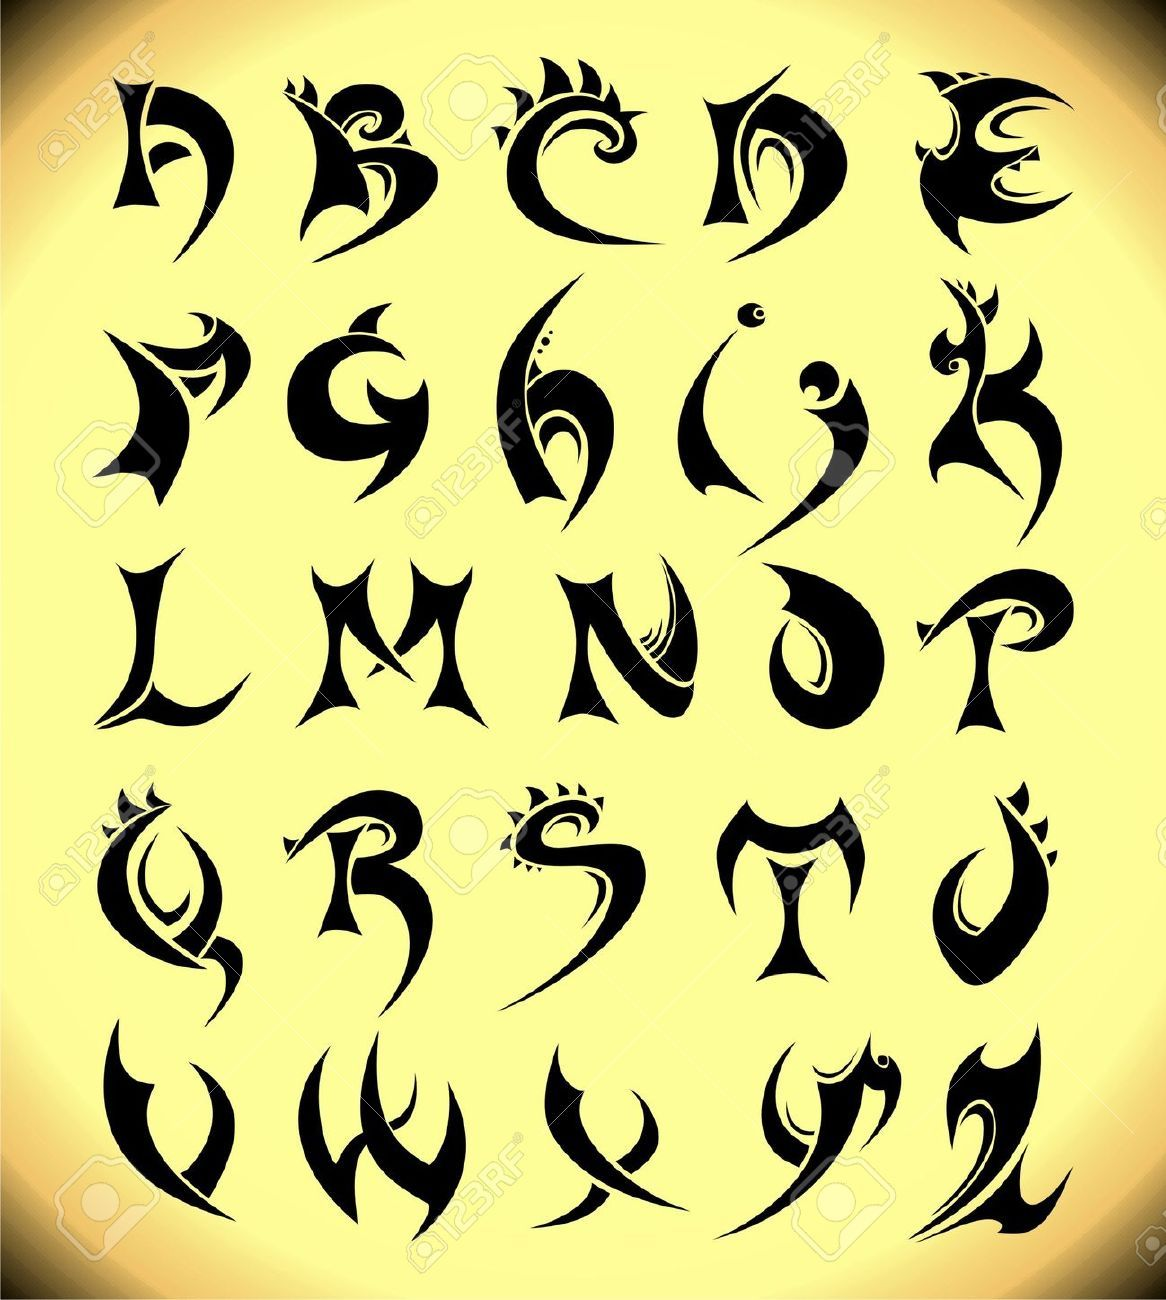 Alphabet s tattoo designs for men 17 best images about cool fonts alphabet s tattoo designs for men 17 best images about cool fonts alphabet fonts how to draw and altavistaventures Gallery